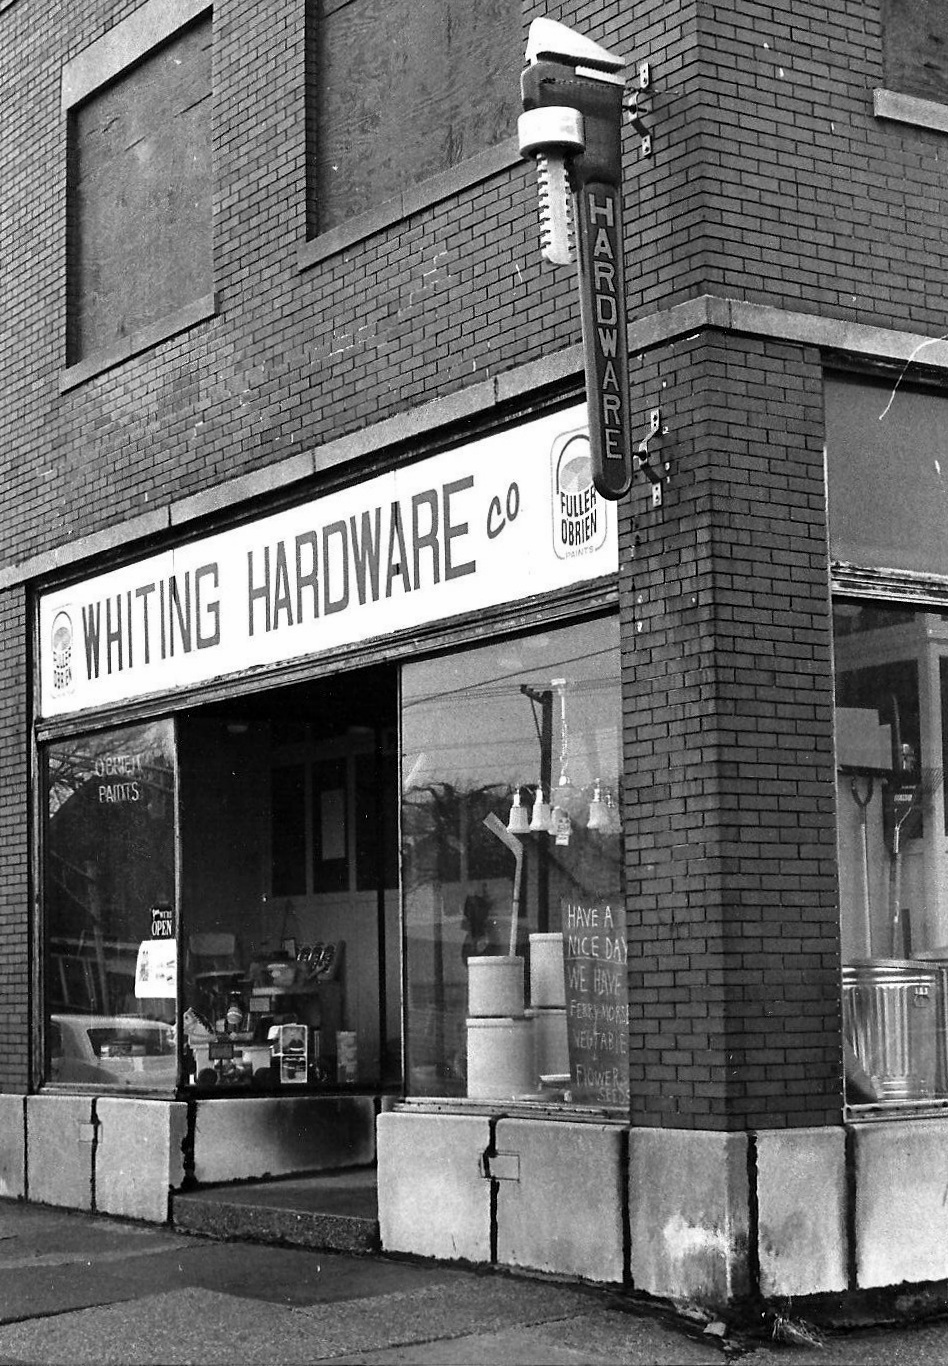 Whiting Hardware, 1600 119th Street in 1980, currently the home of Indy Perks coffee shop. (Susan K. Hmurovic photograph)